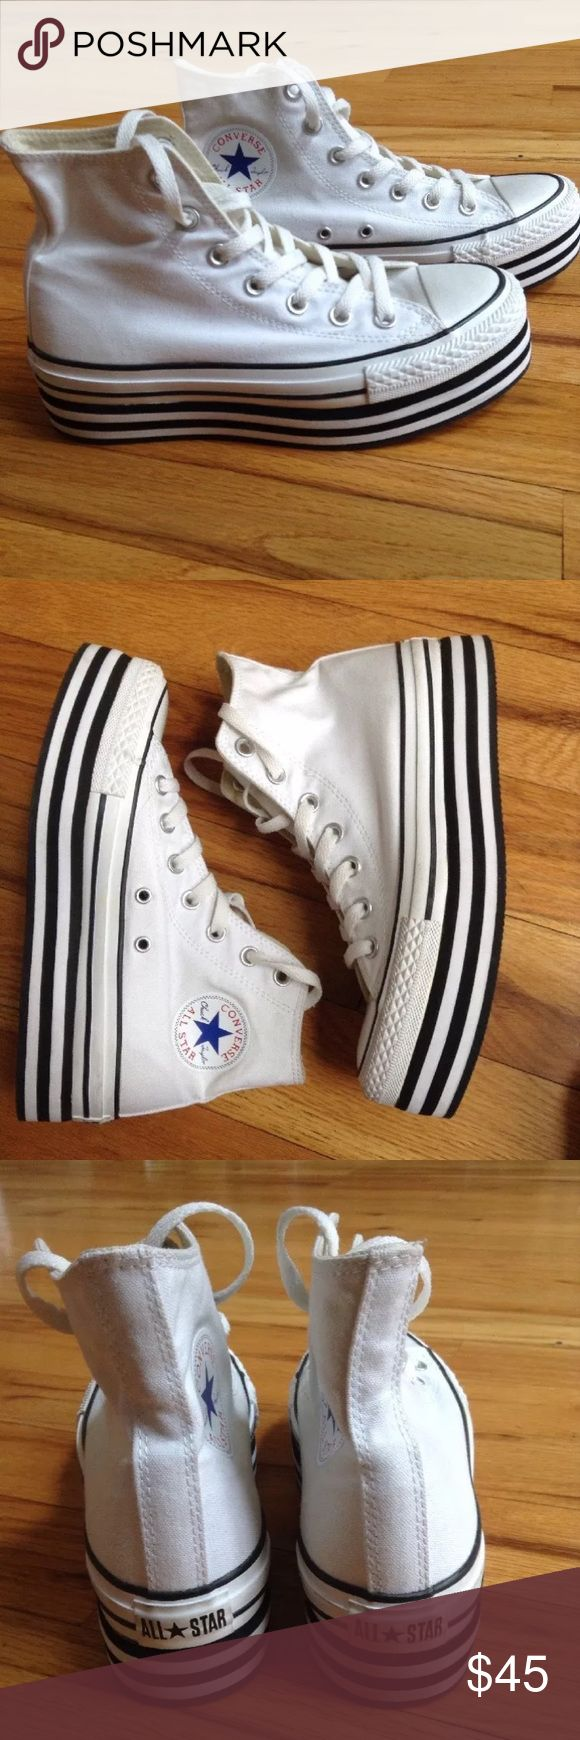 Platform converse chuck taylor shoes white W 7 M 5 White converse platform shoes. Size is men's 5, women's 7. Barely worn. Rare. Smoke free home. Converse Shoes Platforms